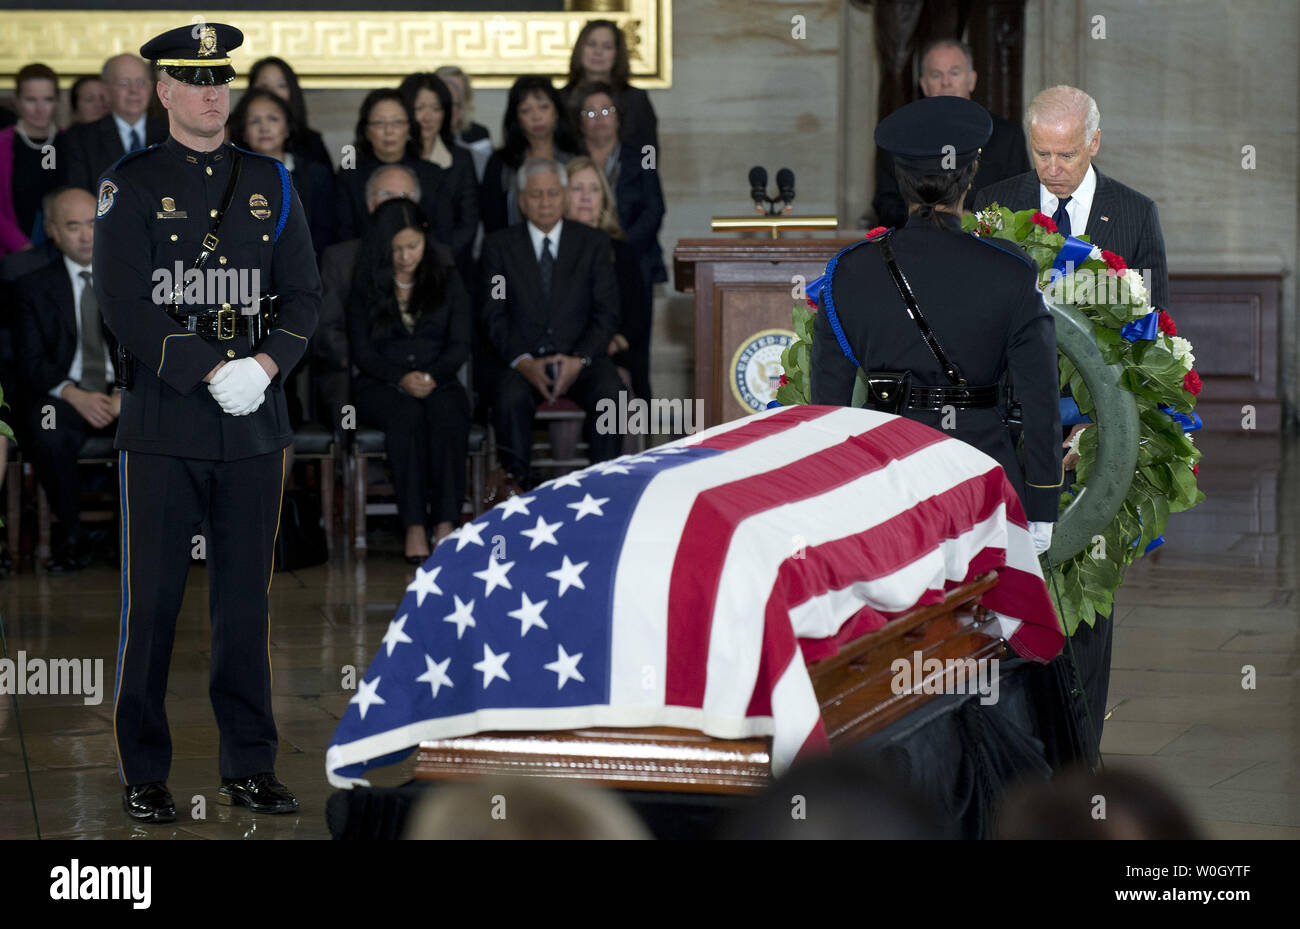 Vice President Joe Biden pays his respects to Sen. Daniel Inouye (D-HI) as he lies in state in the Capitol Rotunda in Washington, DC on December 20, 2012.  Sen. Inouye, the second-longest serving member of Senate, died Monday of respiratory complications.  UPI/Kevin Dietsch Stock Photo